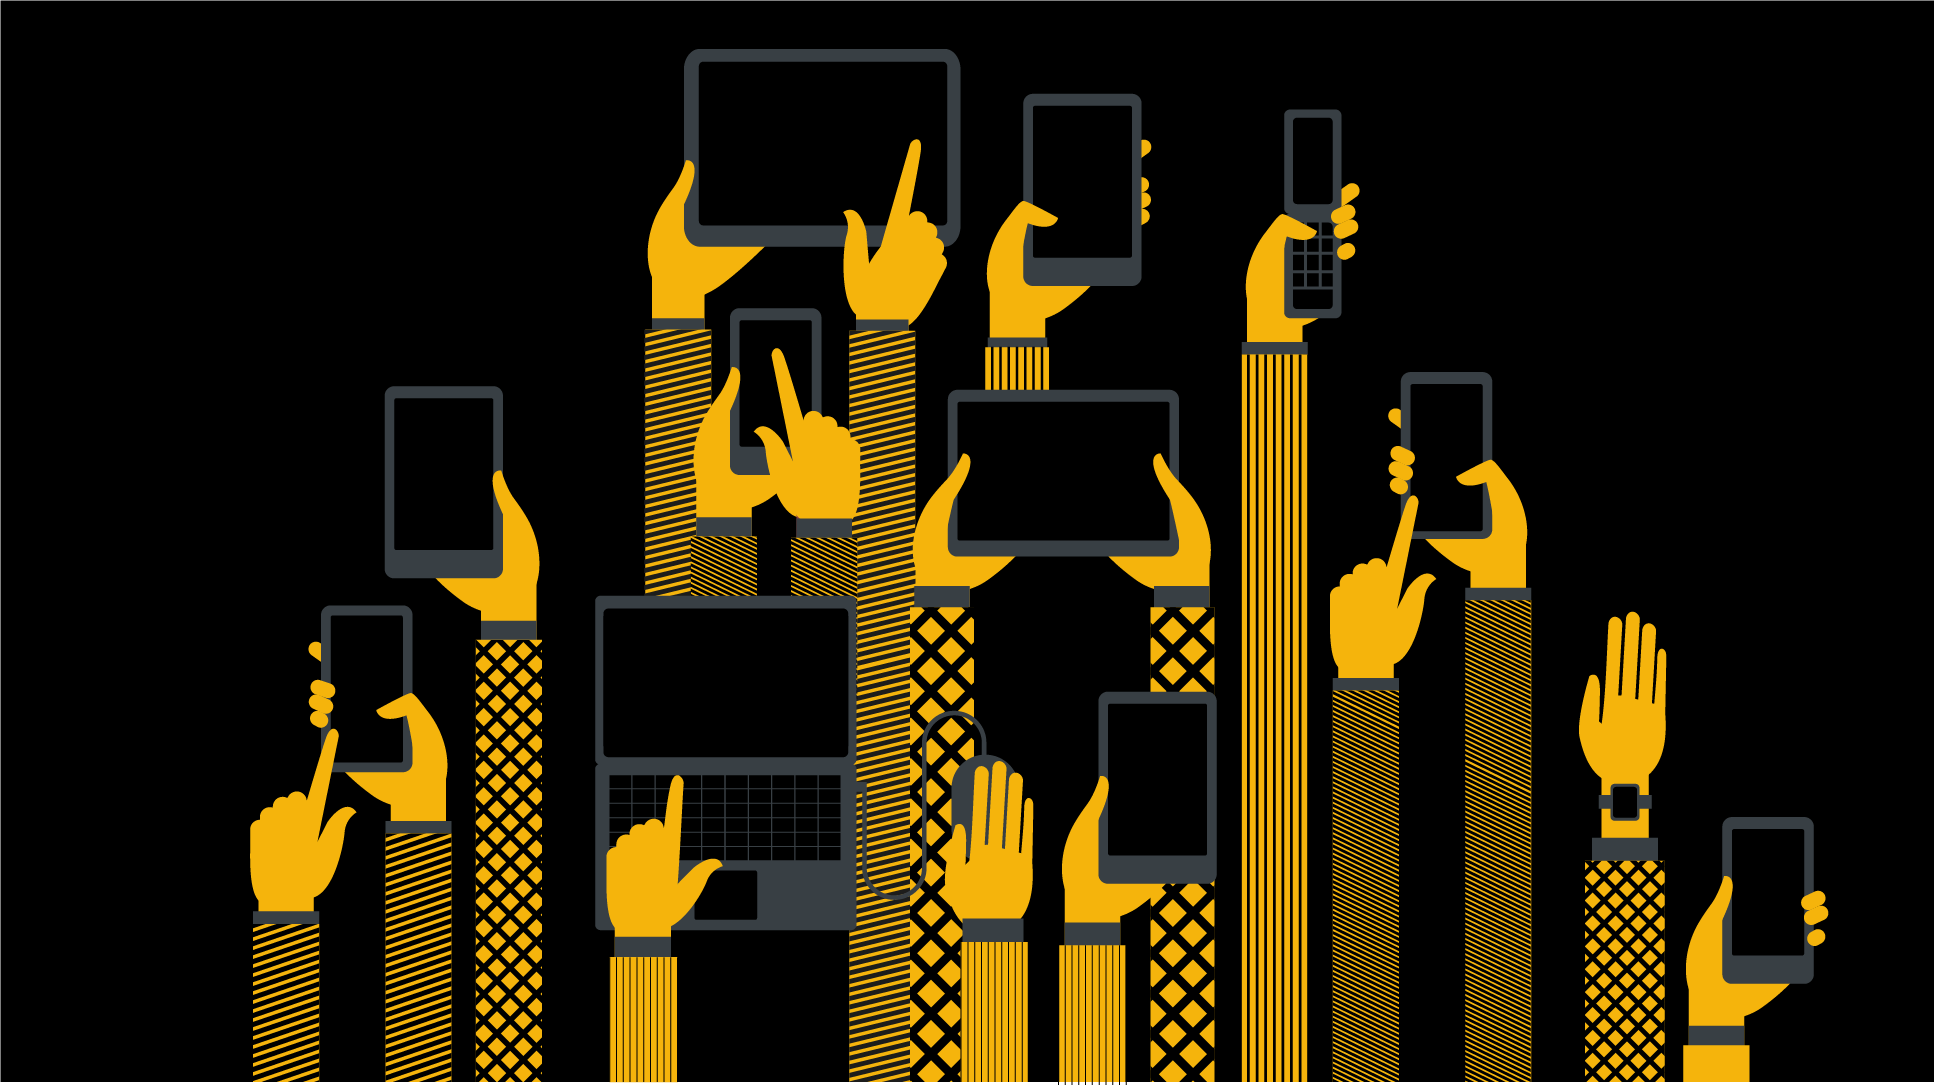 image of hands using different technological devices